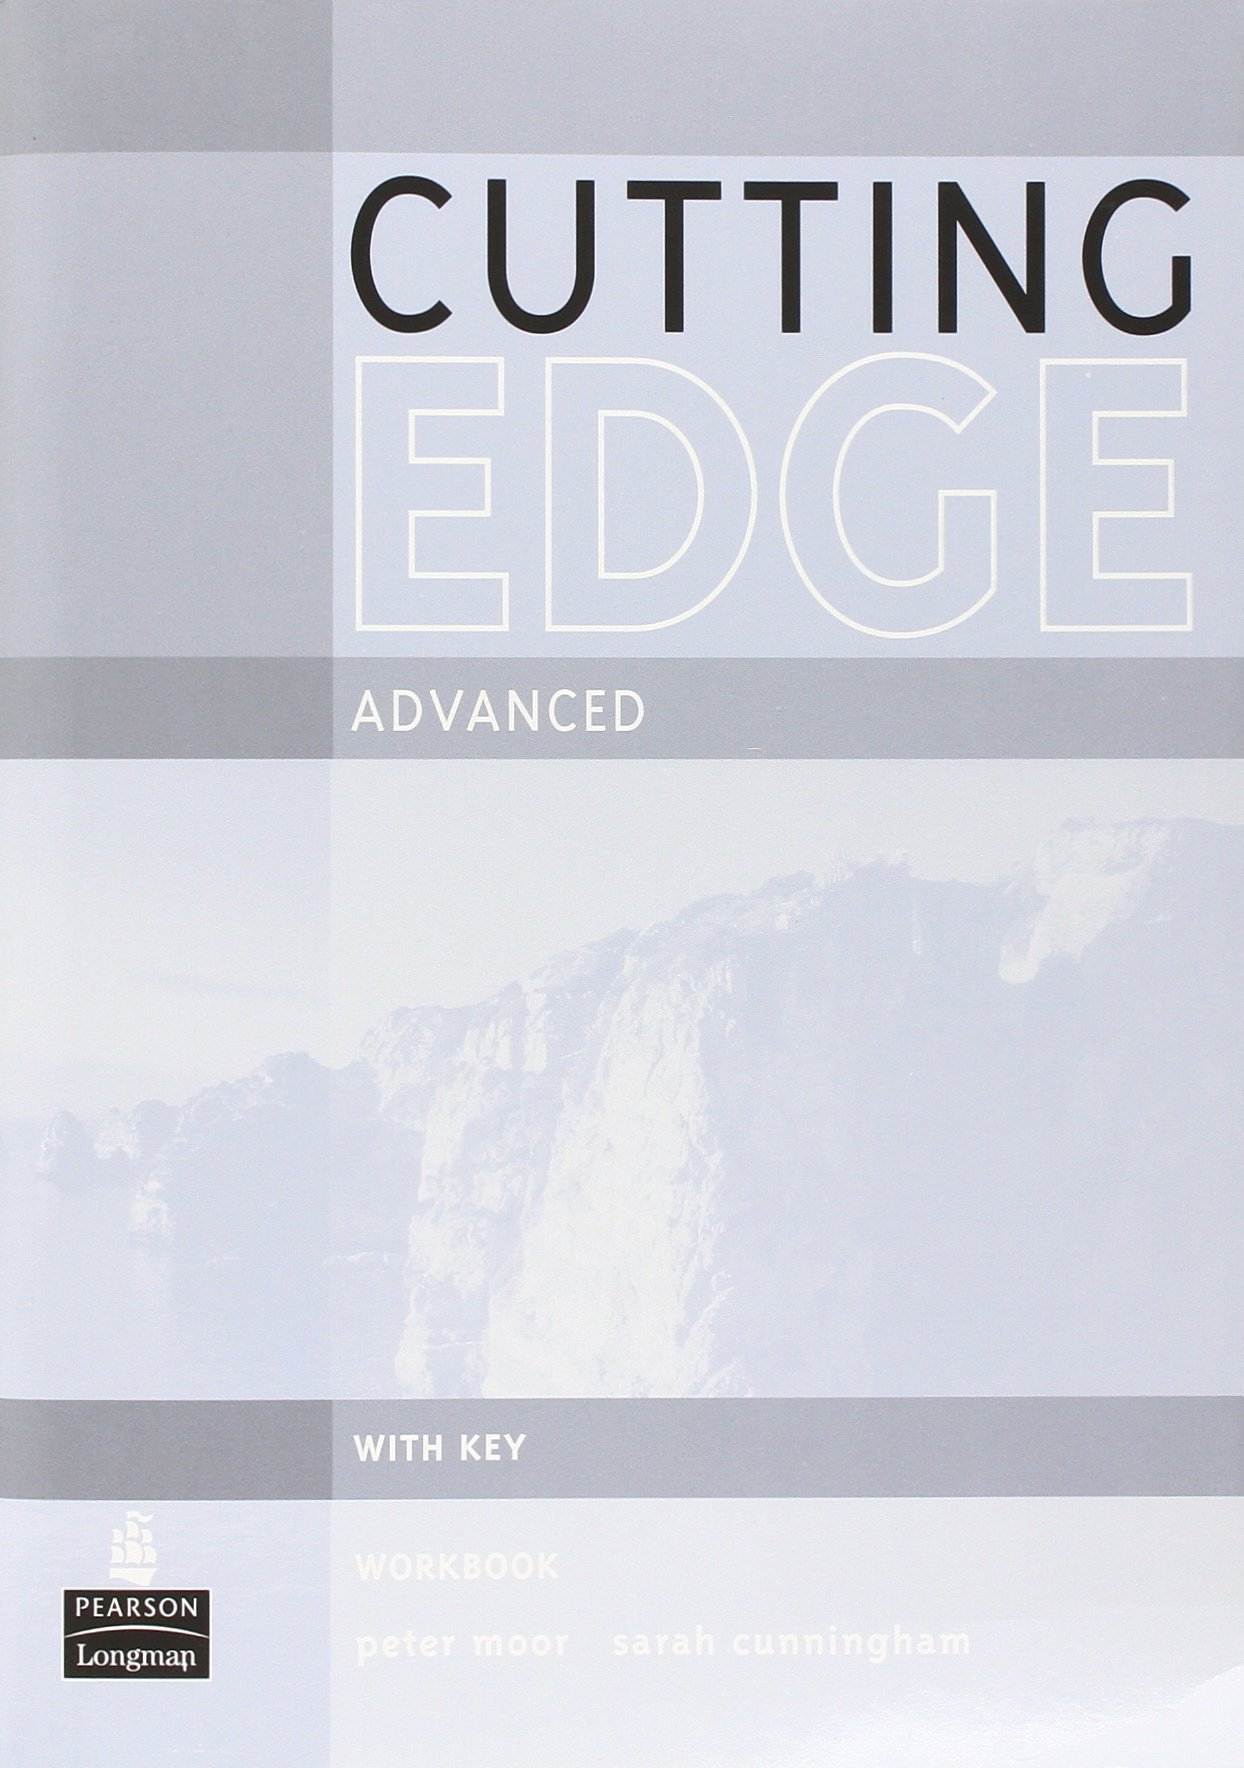 Cutting Edge Advanced Workbook Pdf